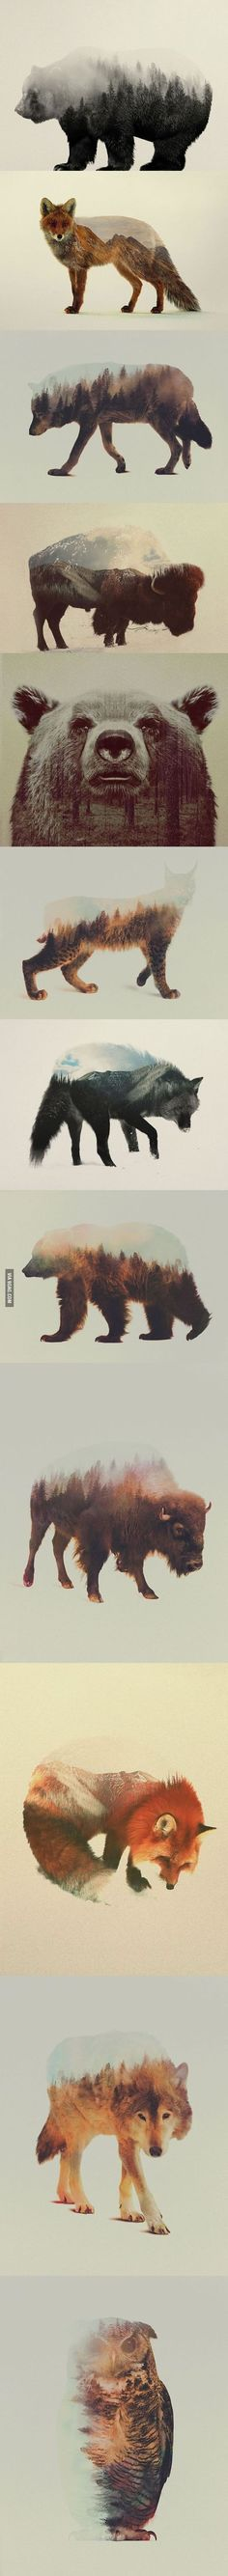 Double Exposure Portraits of Animals Reflecting Their Habitat by Andreas Lie.  I just love this Idea!: